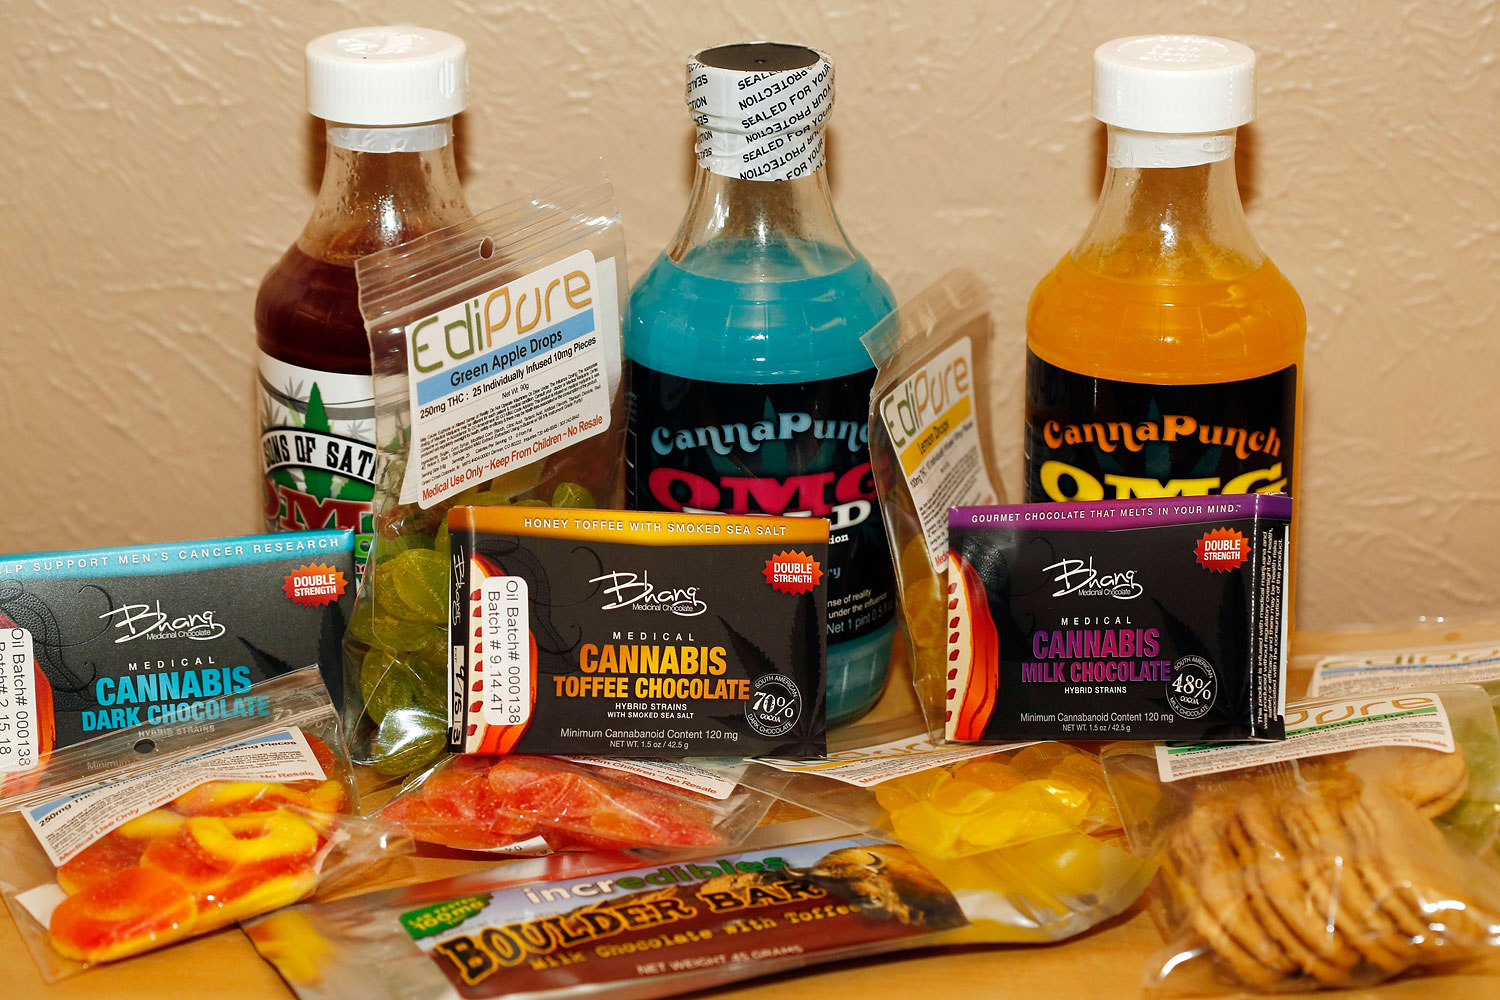 Edible marijuana products are pictured on display at a medical marijuana dispensary in Denver on April 18, 2014.